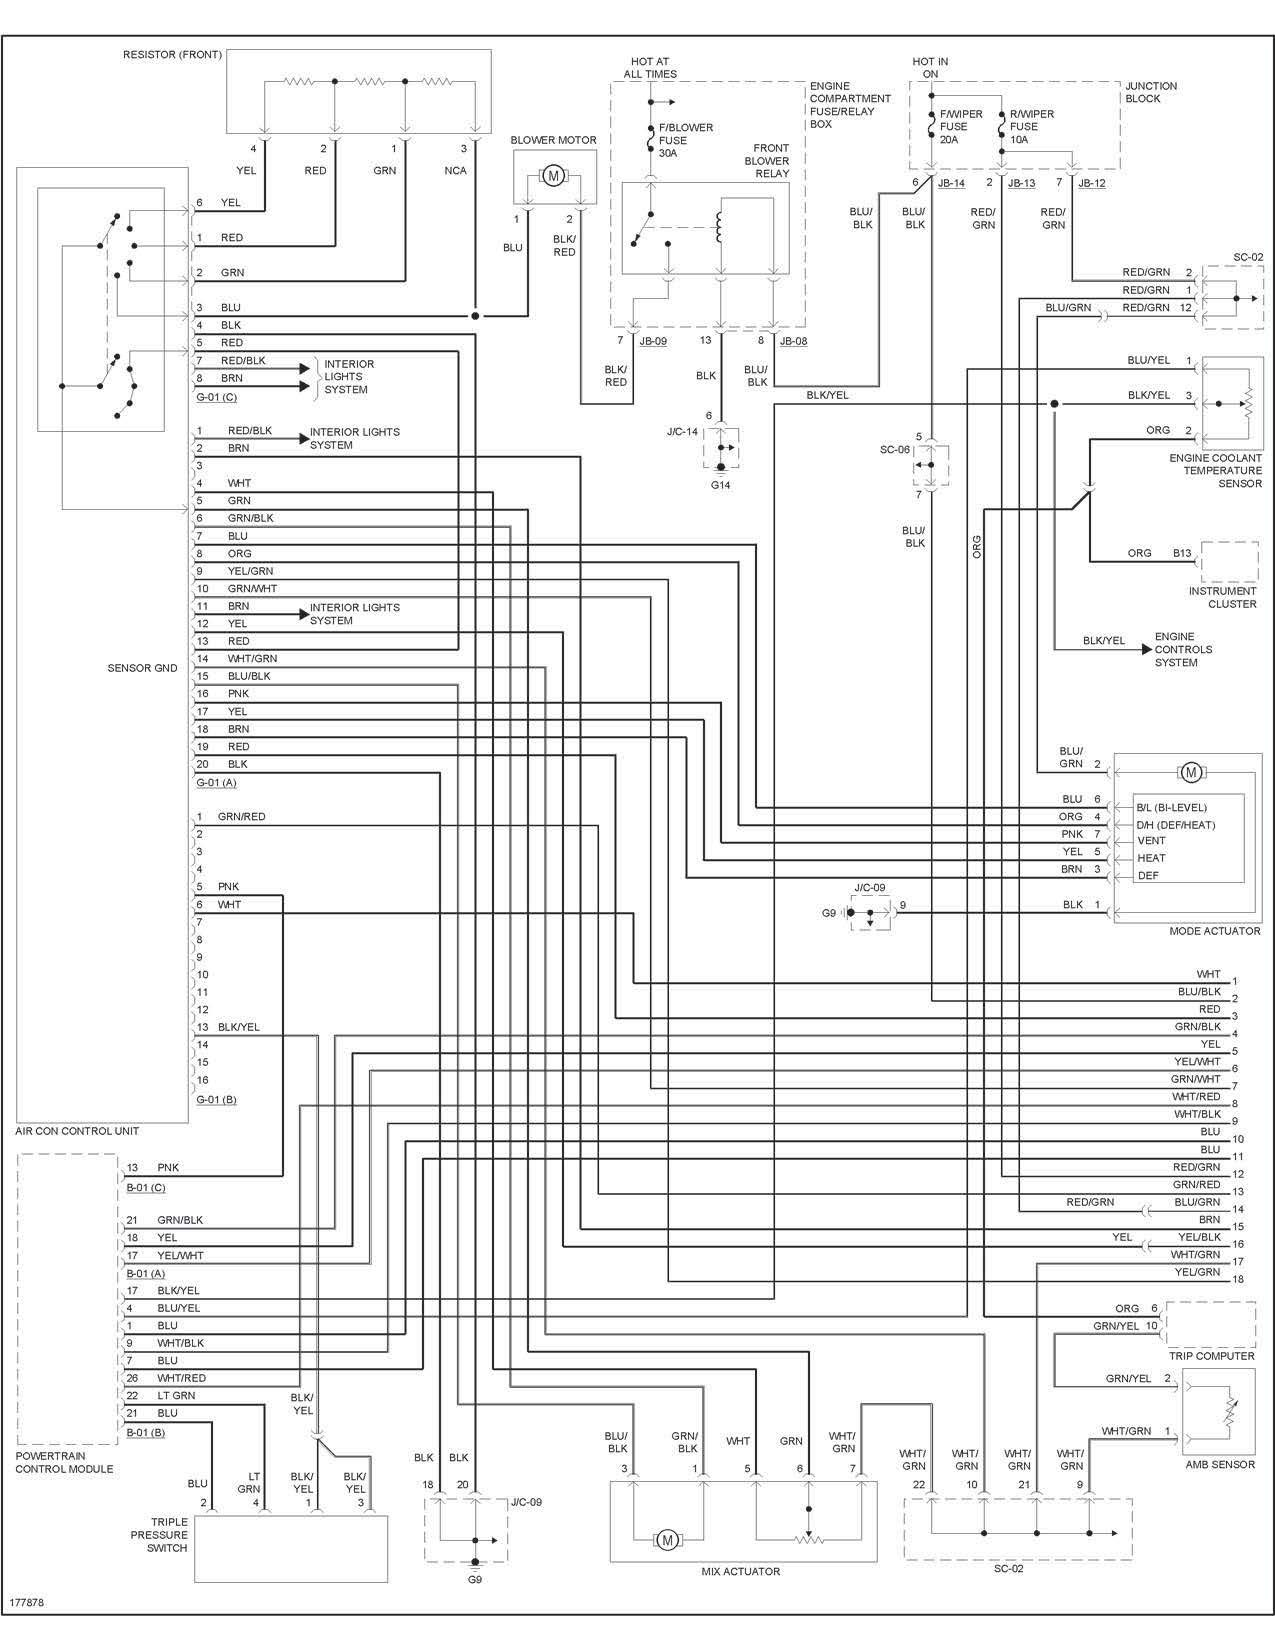 1986 Winnebago Wiring Diagram On Wiring Diagram For A Hampton Bay